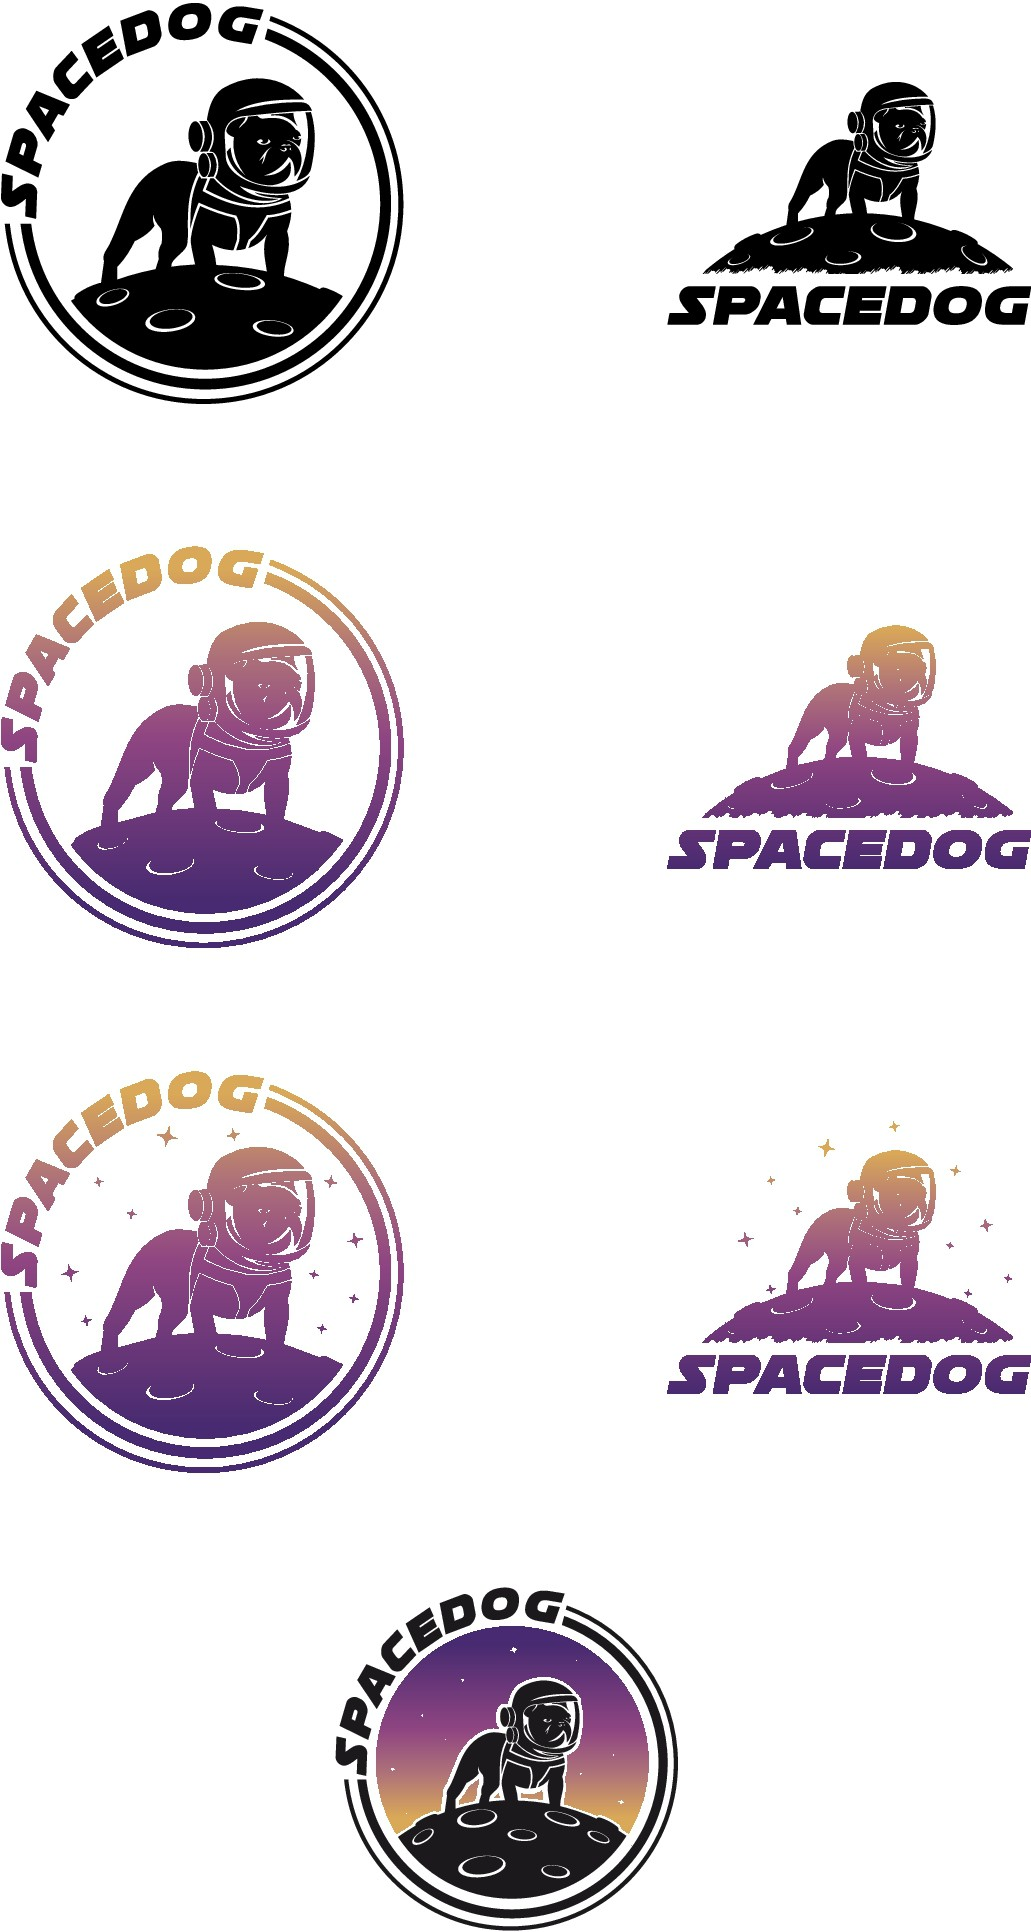 Space Dog logo needed for awesome LED dog harness